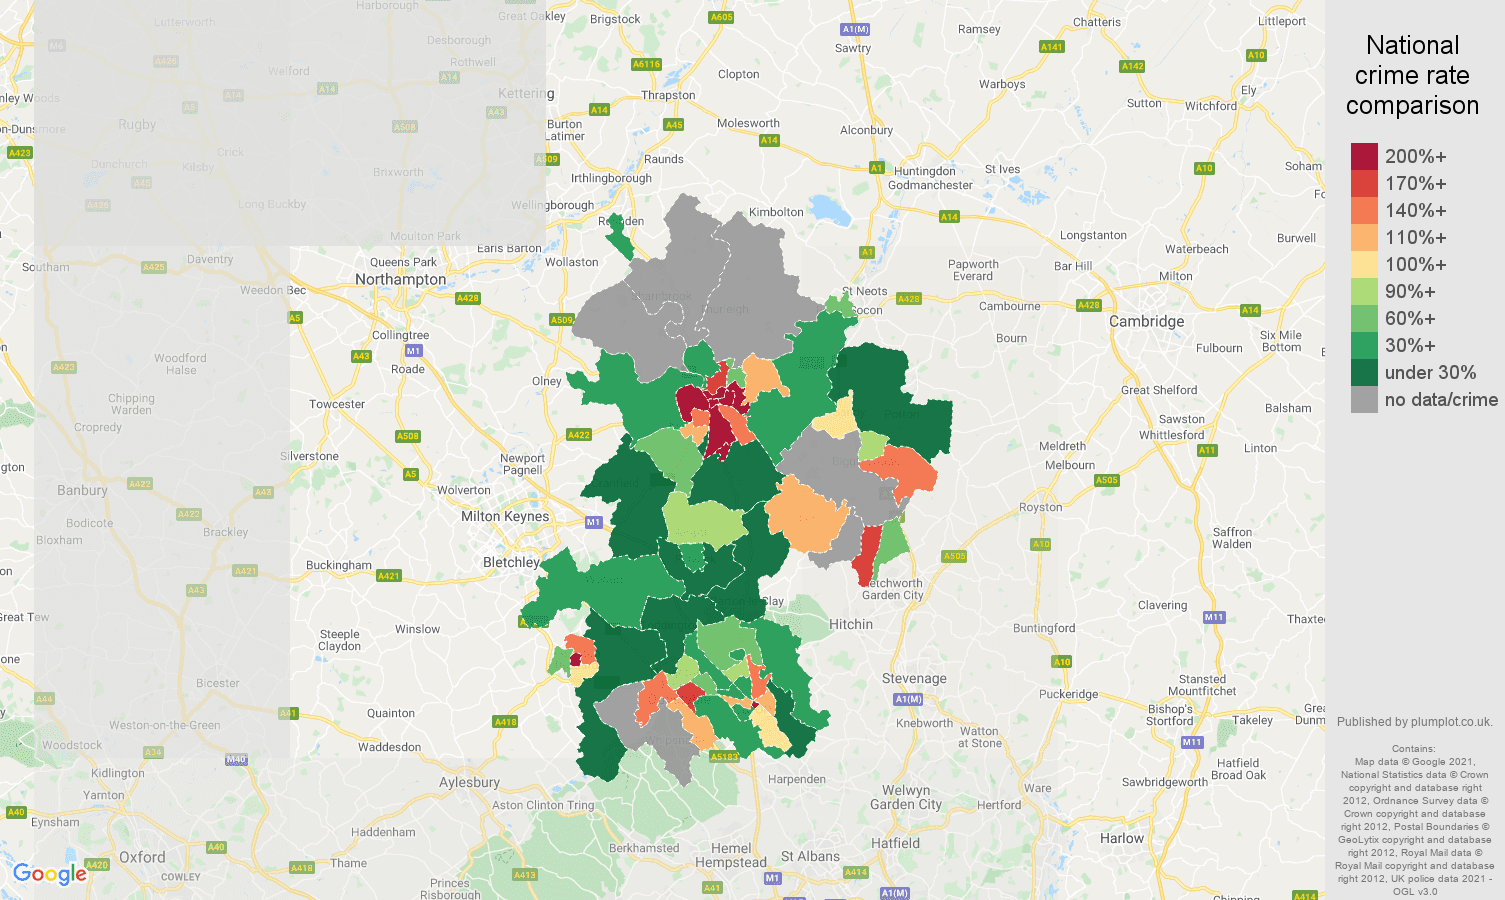 Bedfordshire bicycle theft crime rate comparison map